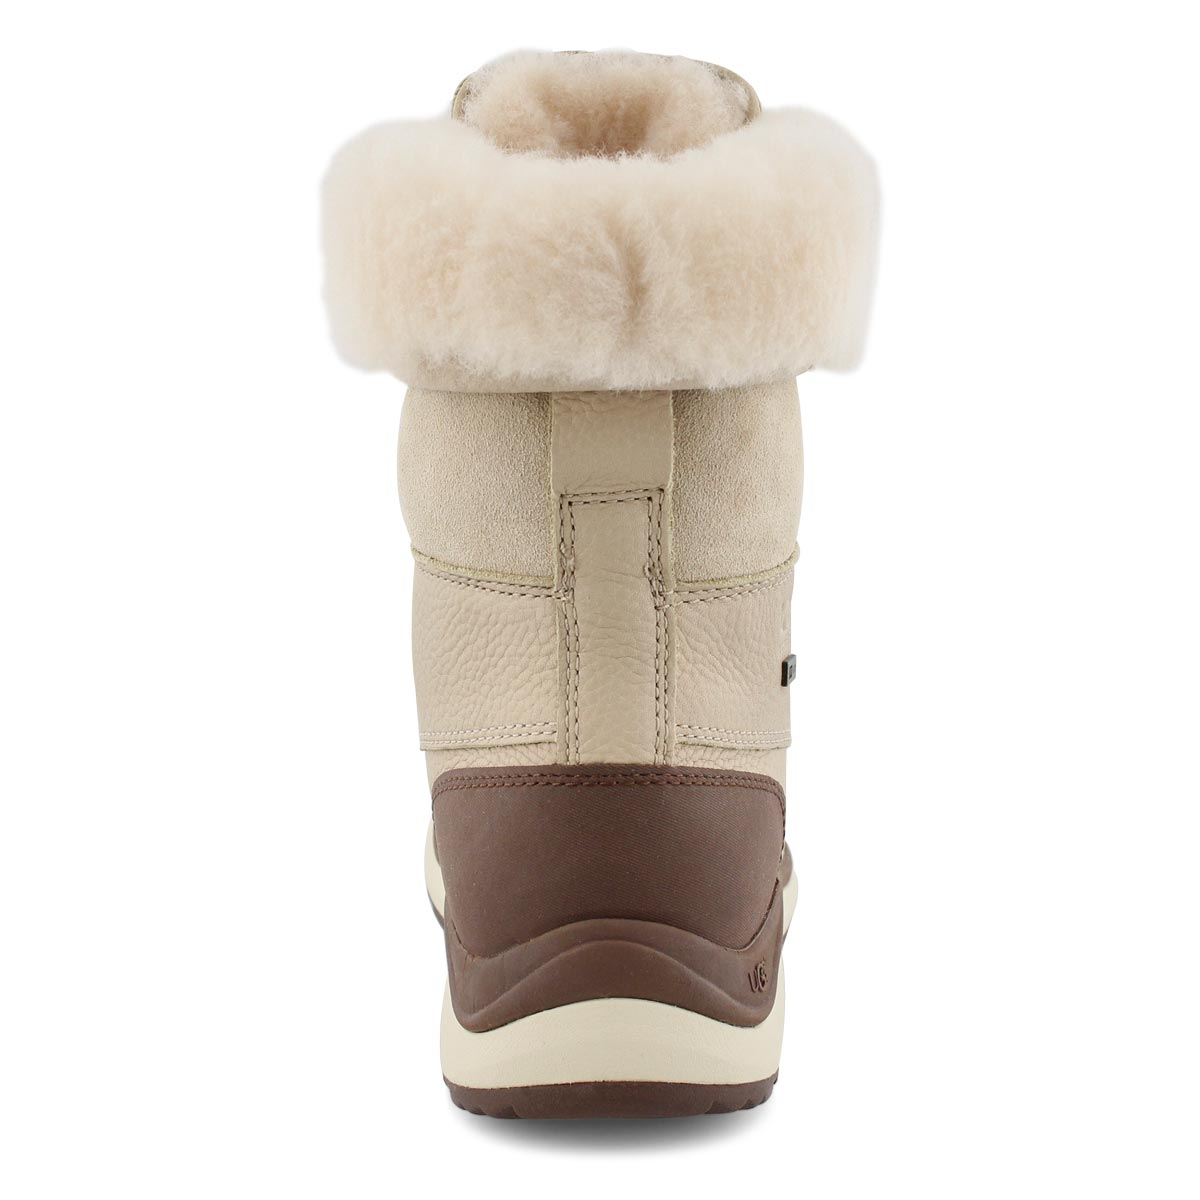 Lds Adirondack III sand winter boot